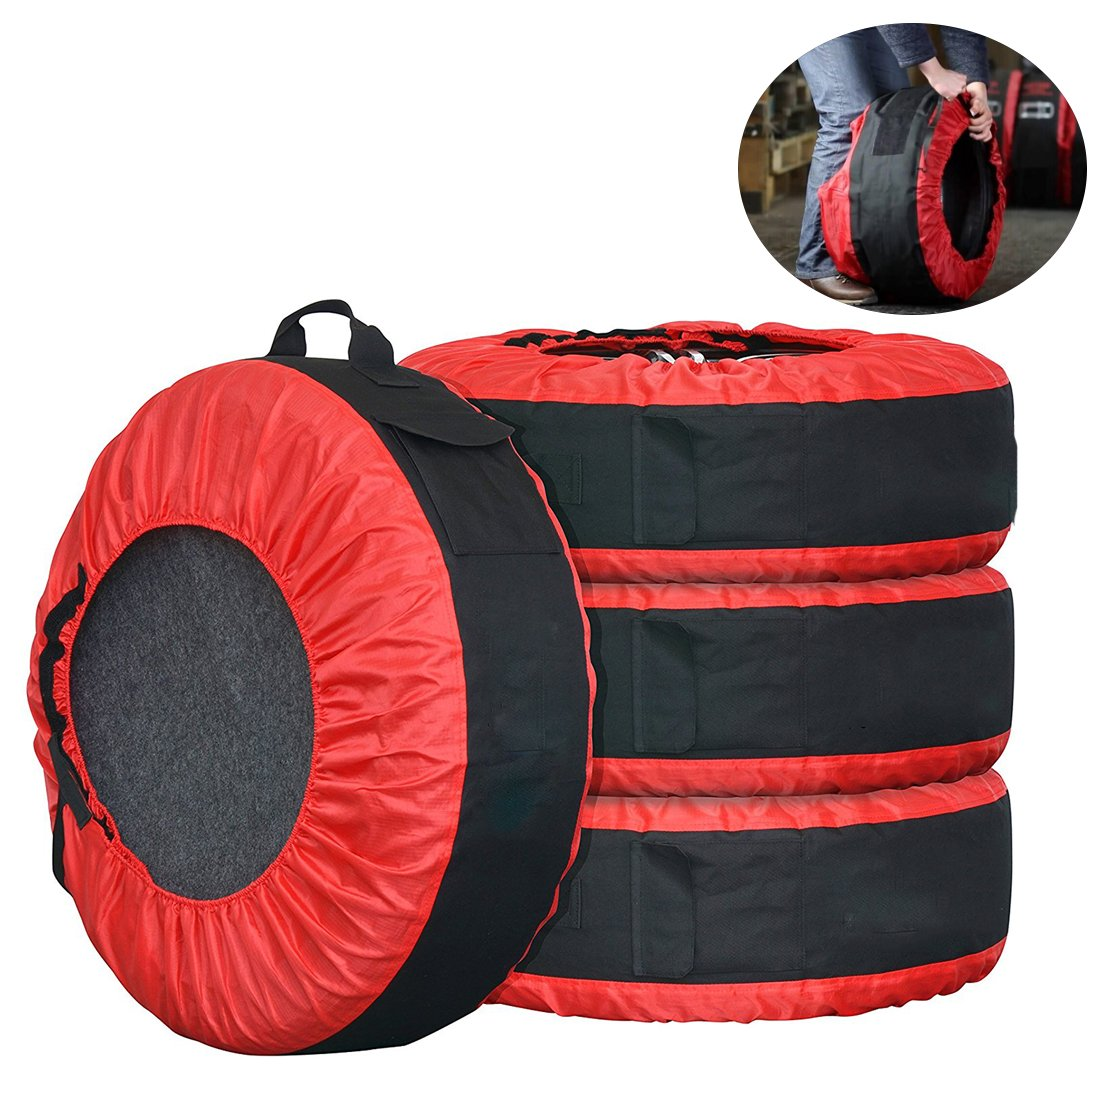 FLR pneumatico Tote regolabile impermeabile grigio 30  in gomma copre borse stagionale tire Storage Bag per auto off Road Truck tire Totes set di 4 WCH AUTO ACCESSORIES LIMITED